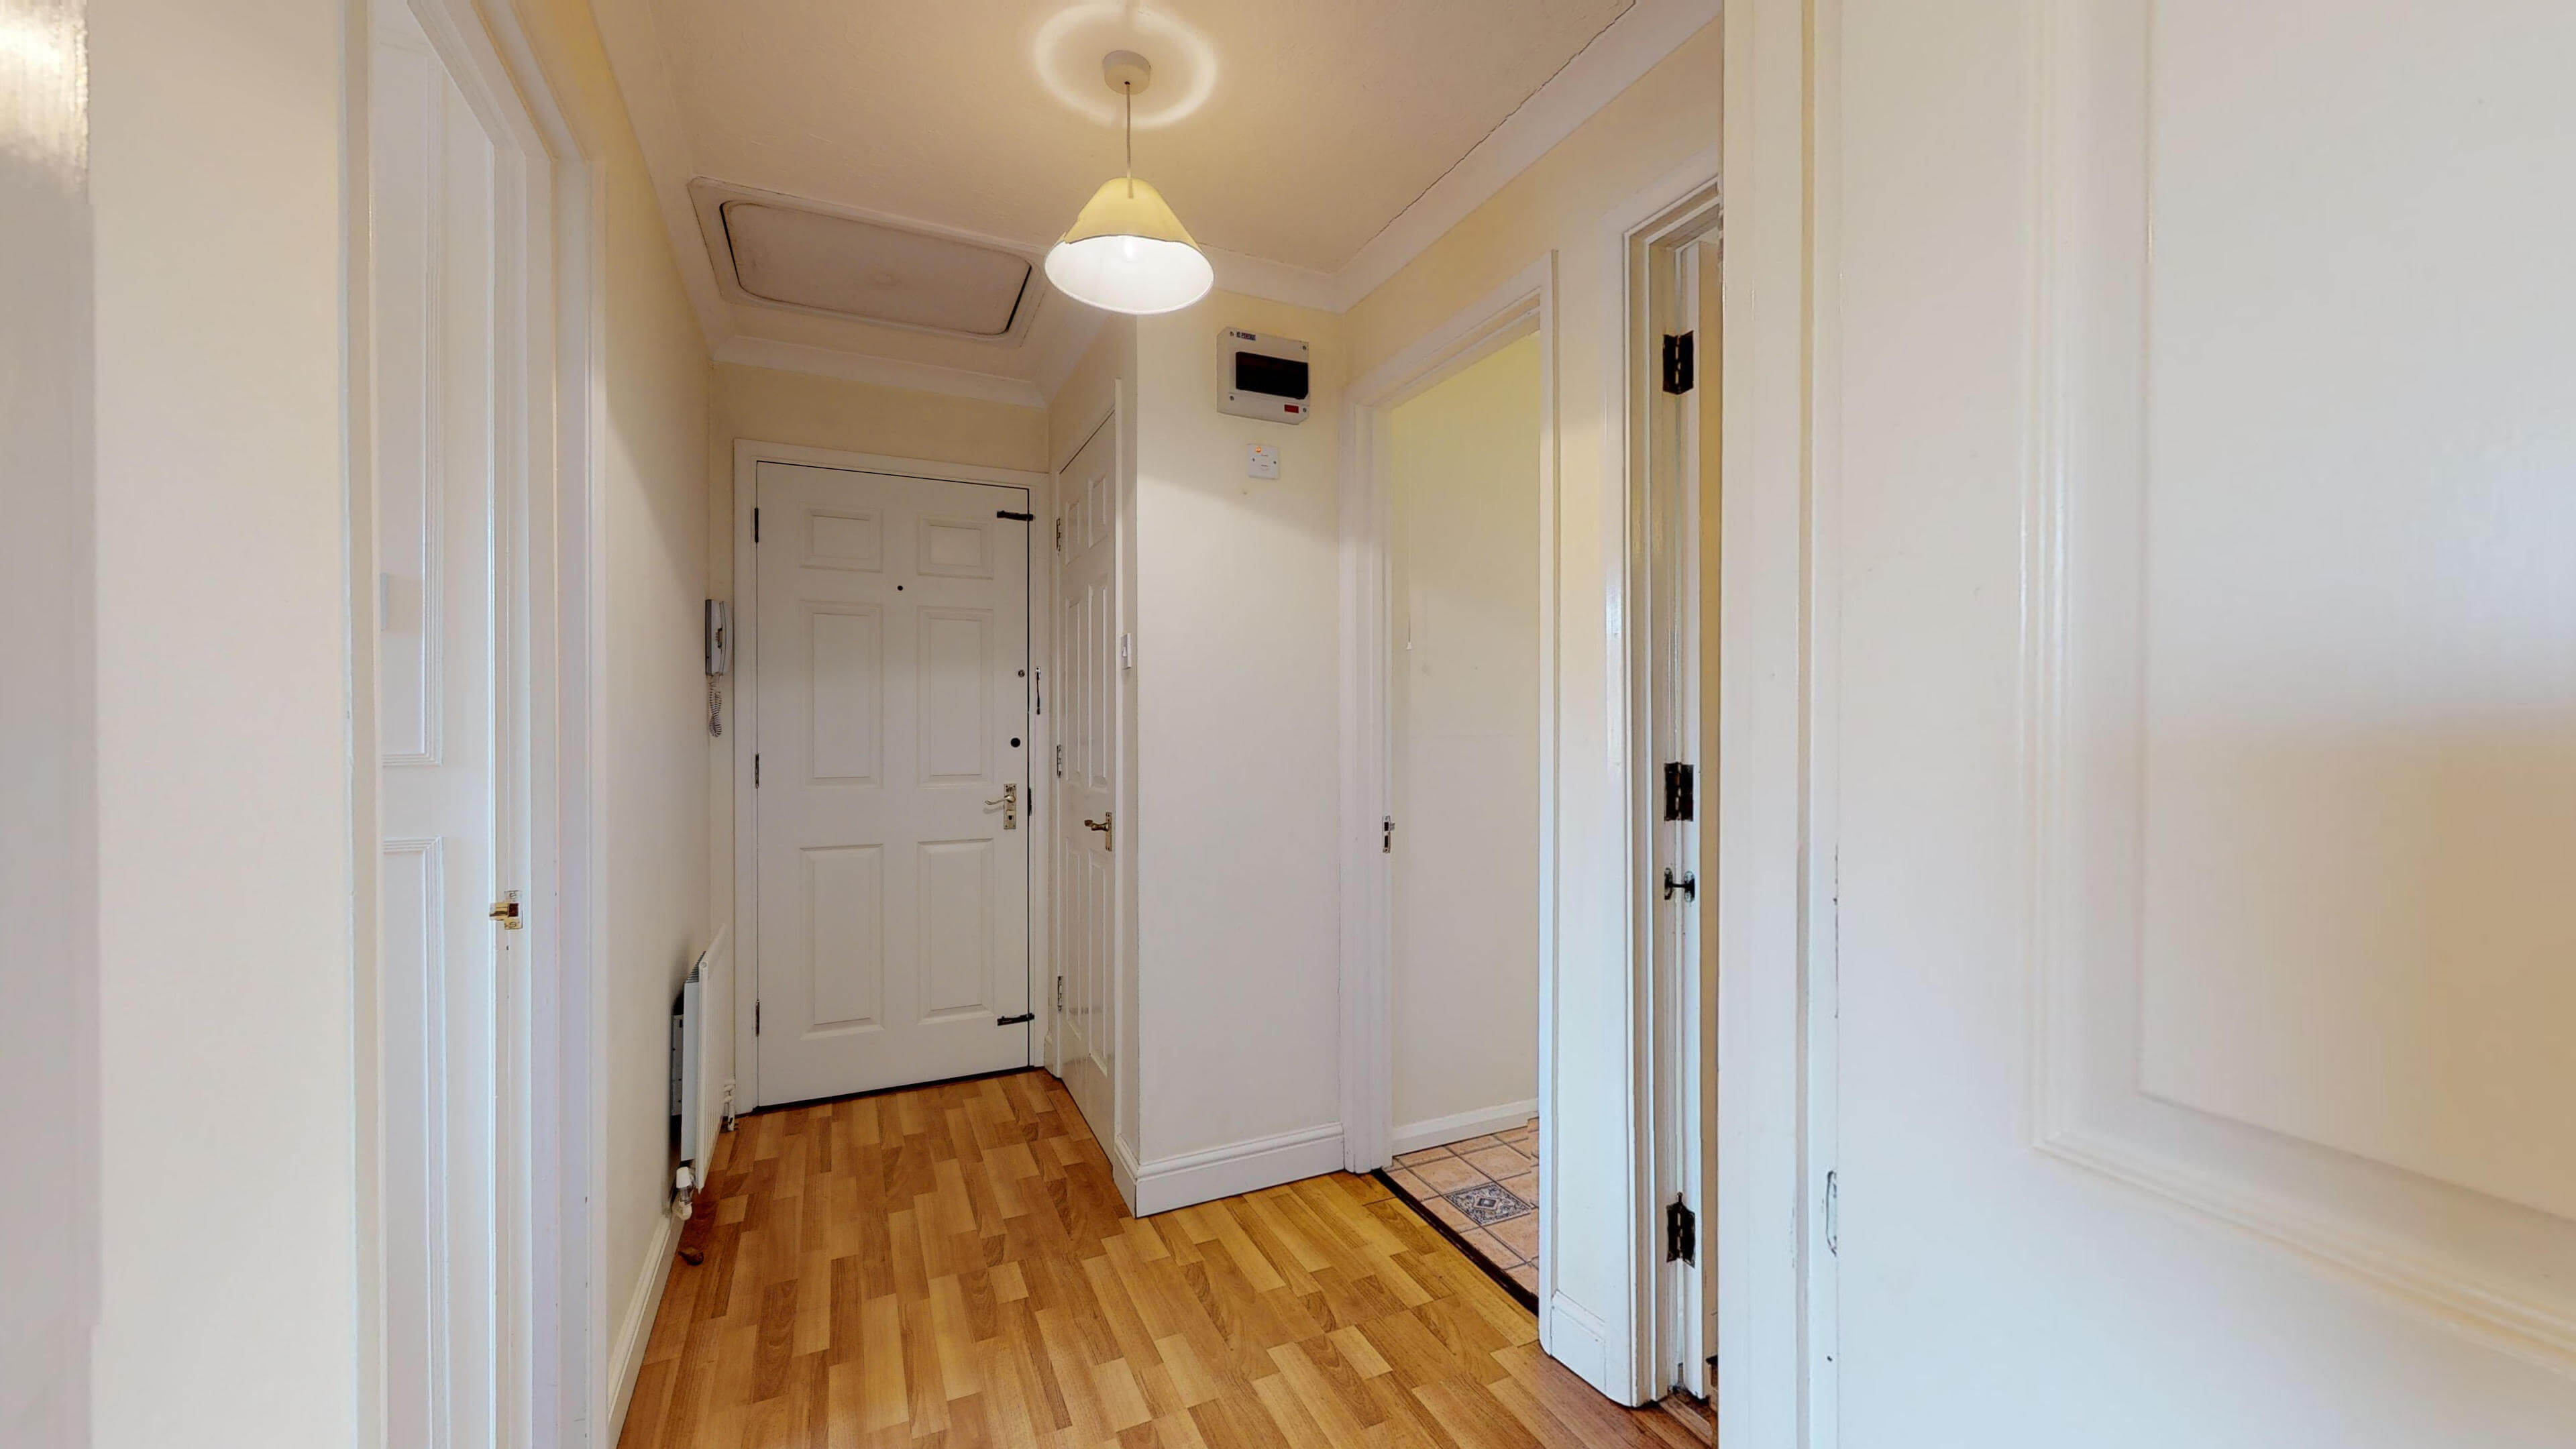 Millbank Oxford City Centre Short Stay Apartment Sleeps 4 Hall